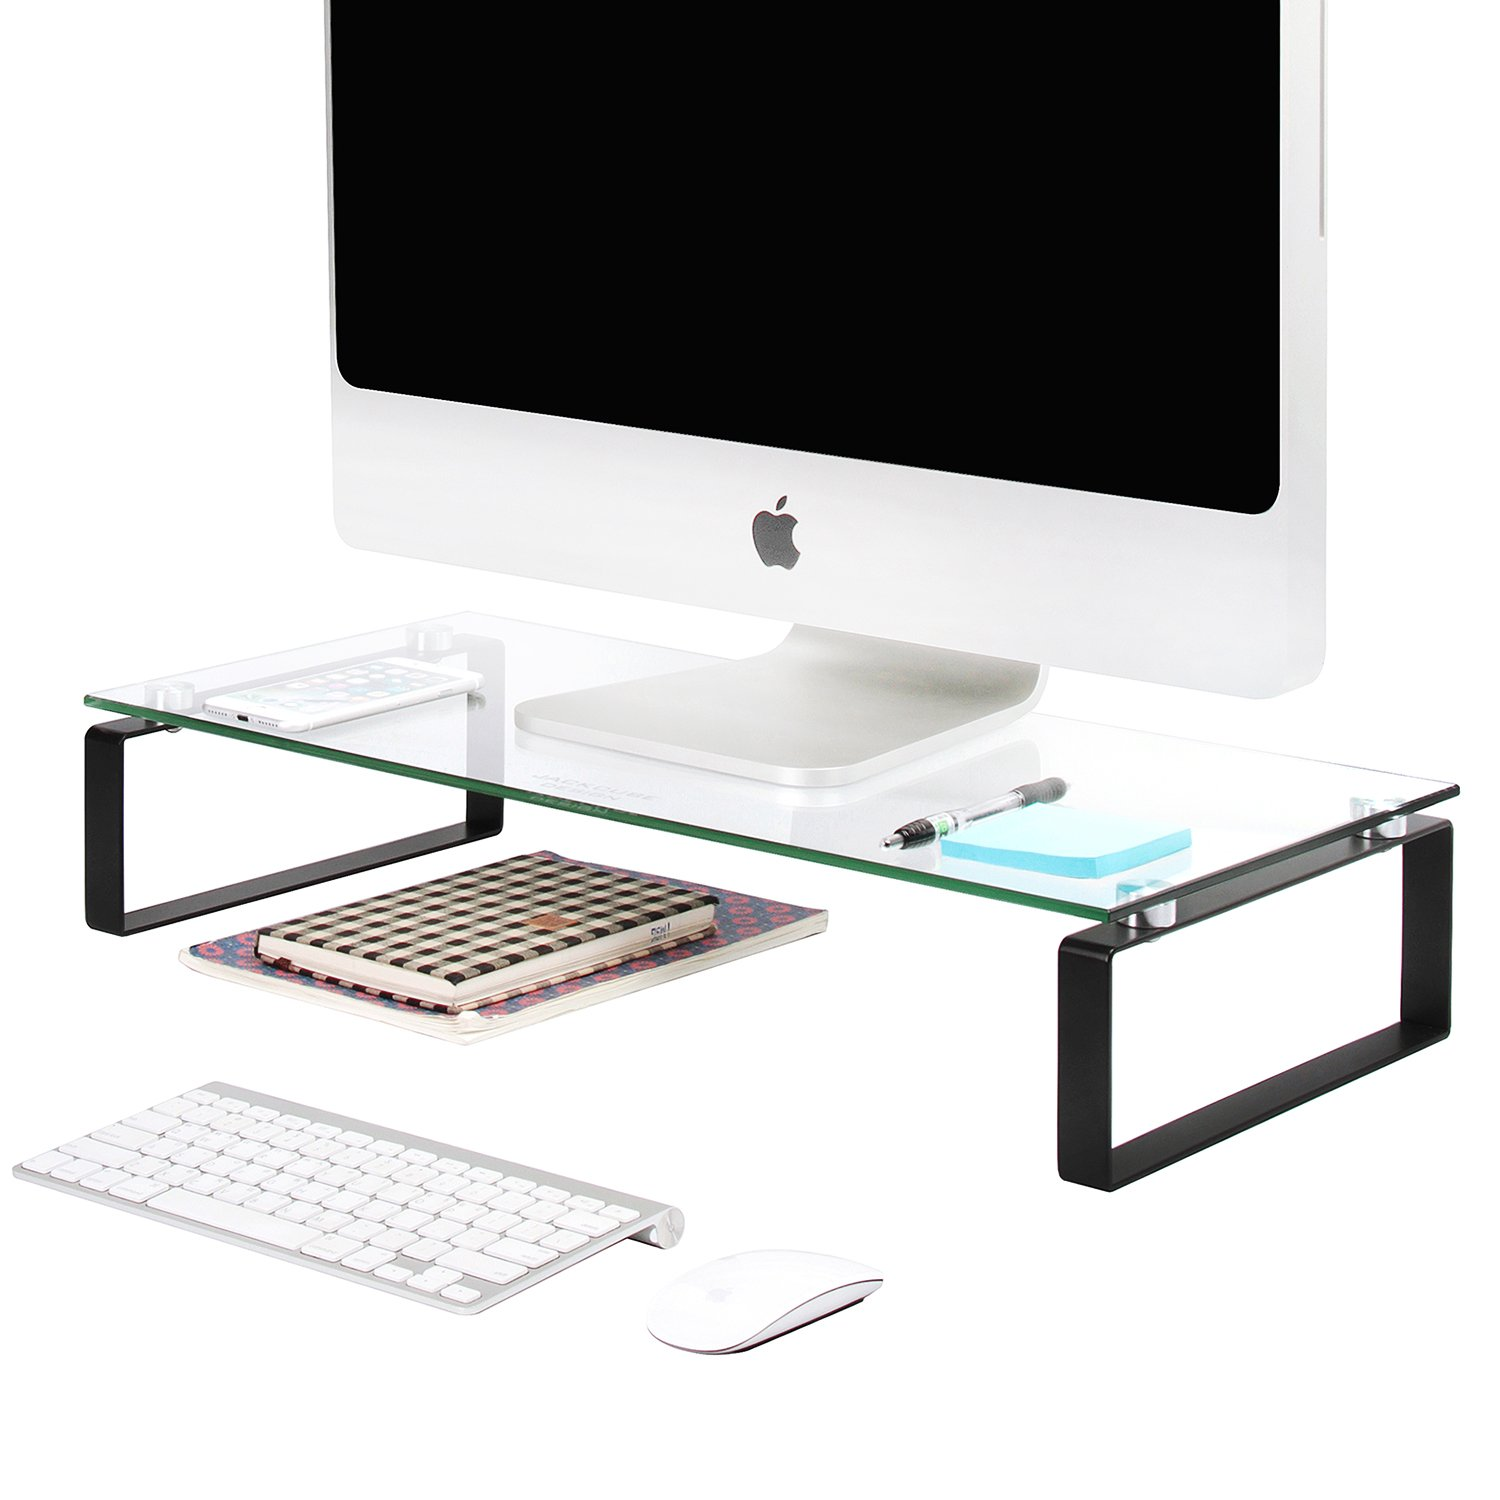 JackCubeDesign Tempered Glass Monitor Stand Computer Desktop Laptop Riser Holder Shelf Notebook Organizer with Black Steel Support(23.43 x 10.87 x 4.53 inches)-:MK315A